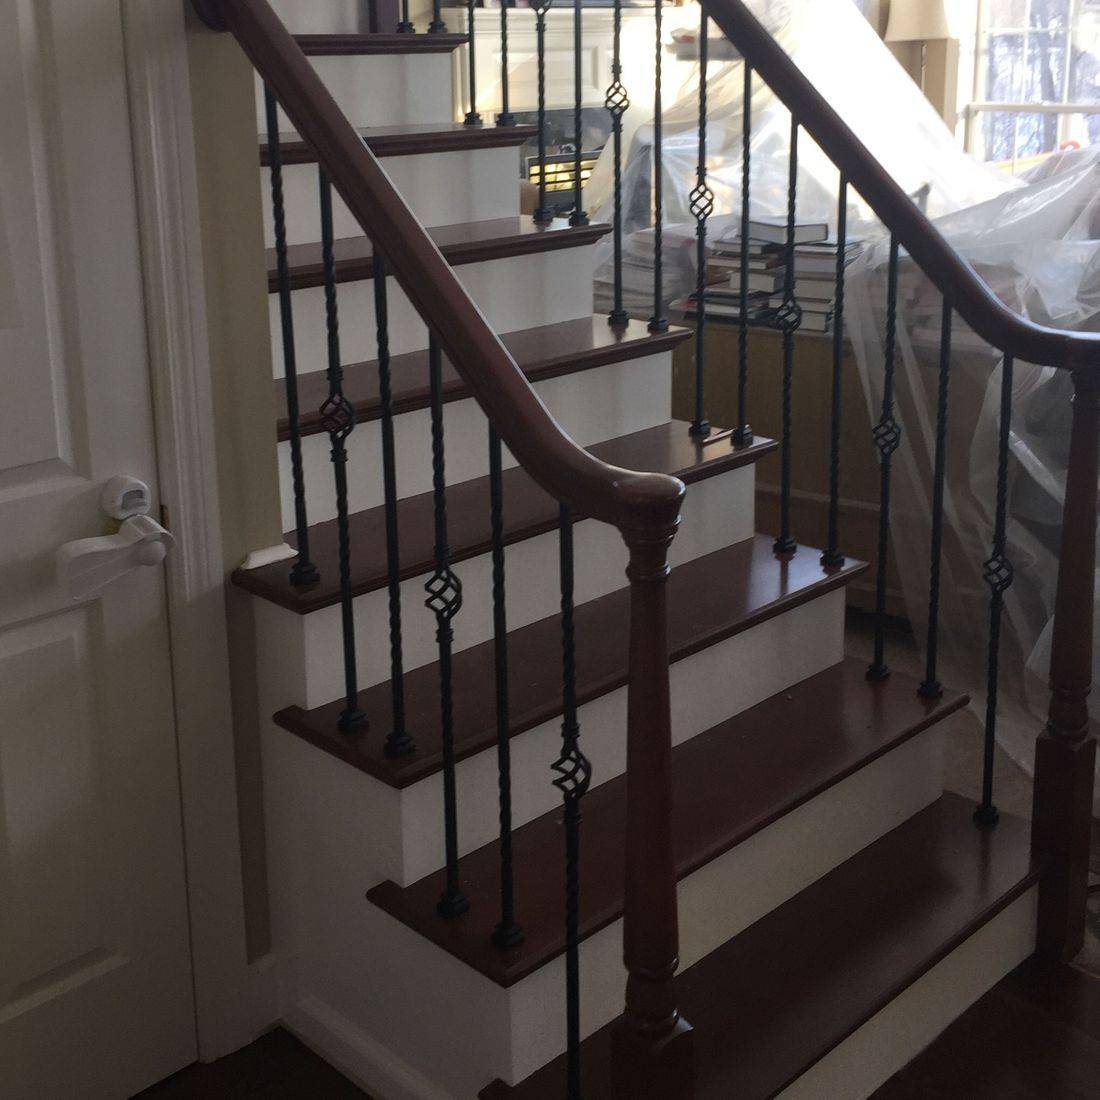 Railings and Stairs